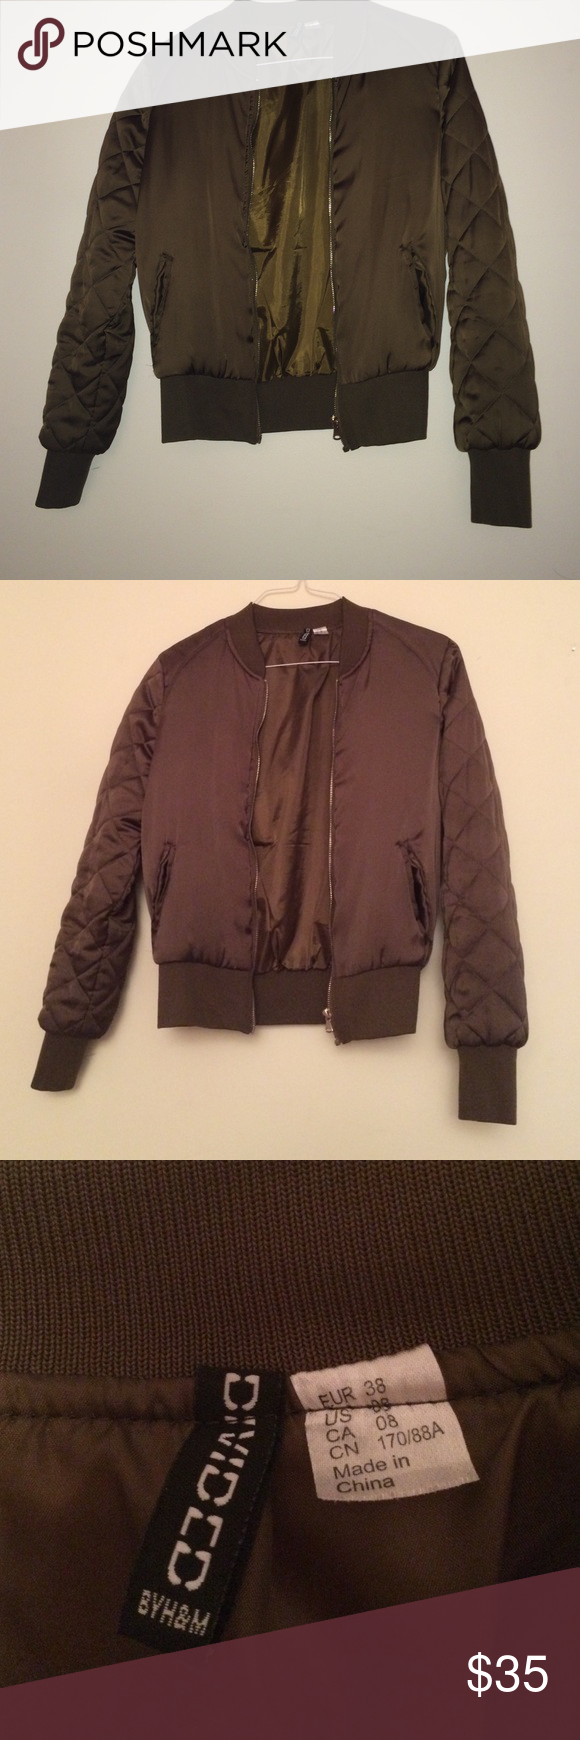 Quilted bomber jacket Quilted satin bomber jacket from H&M, sought after and sold out. Very good quality and only worn twice with no signs of wear. Retailed for $60. Listed as topshop for visibility Topshop Jackets & Coats